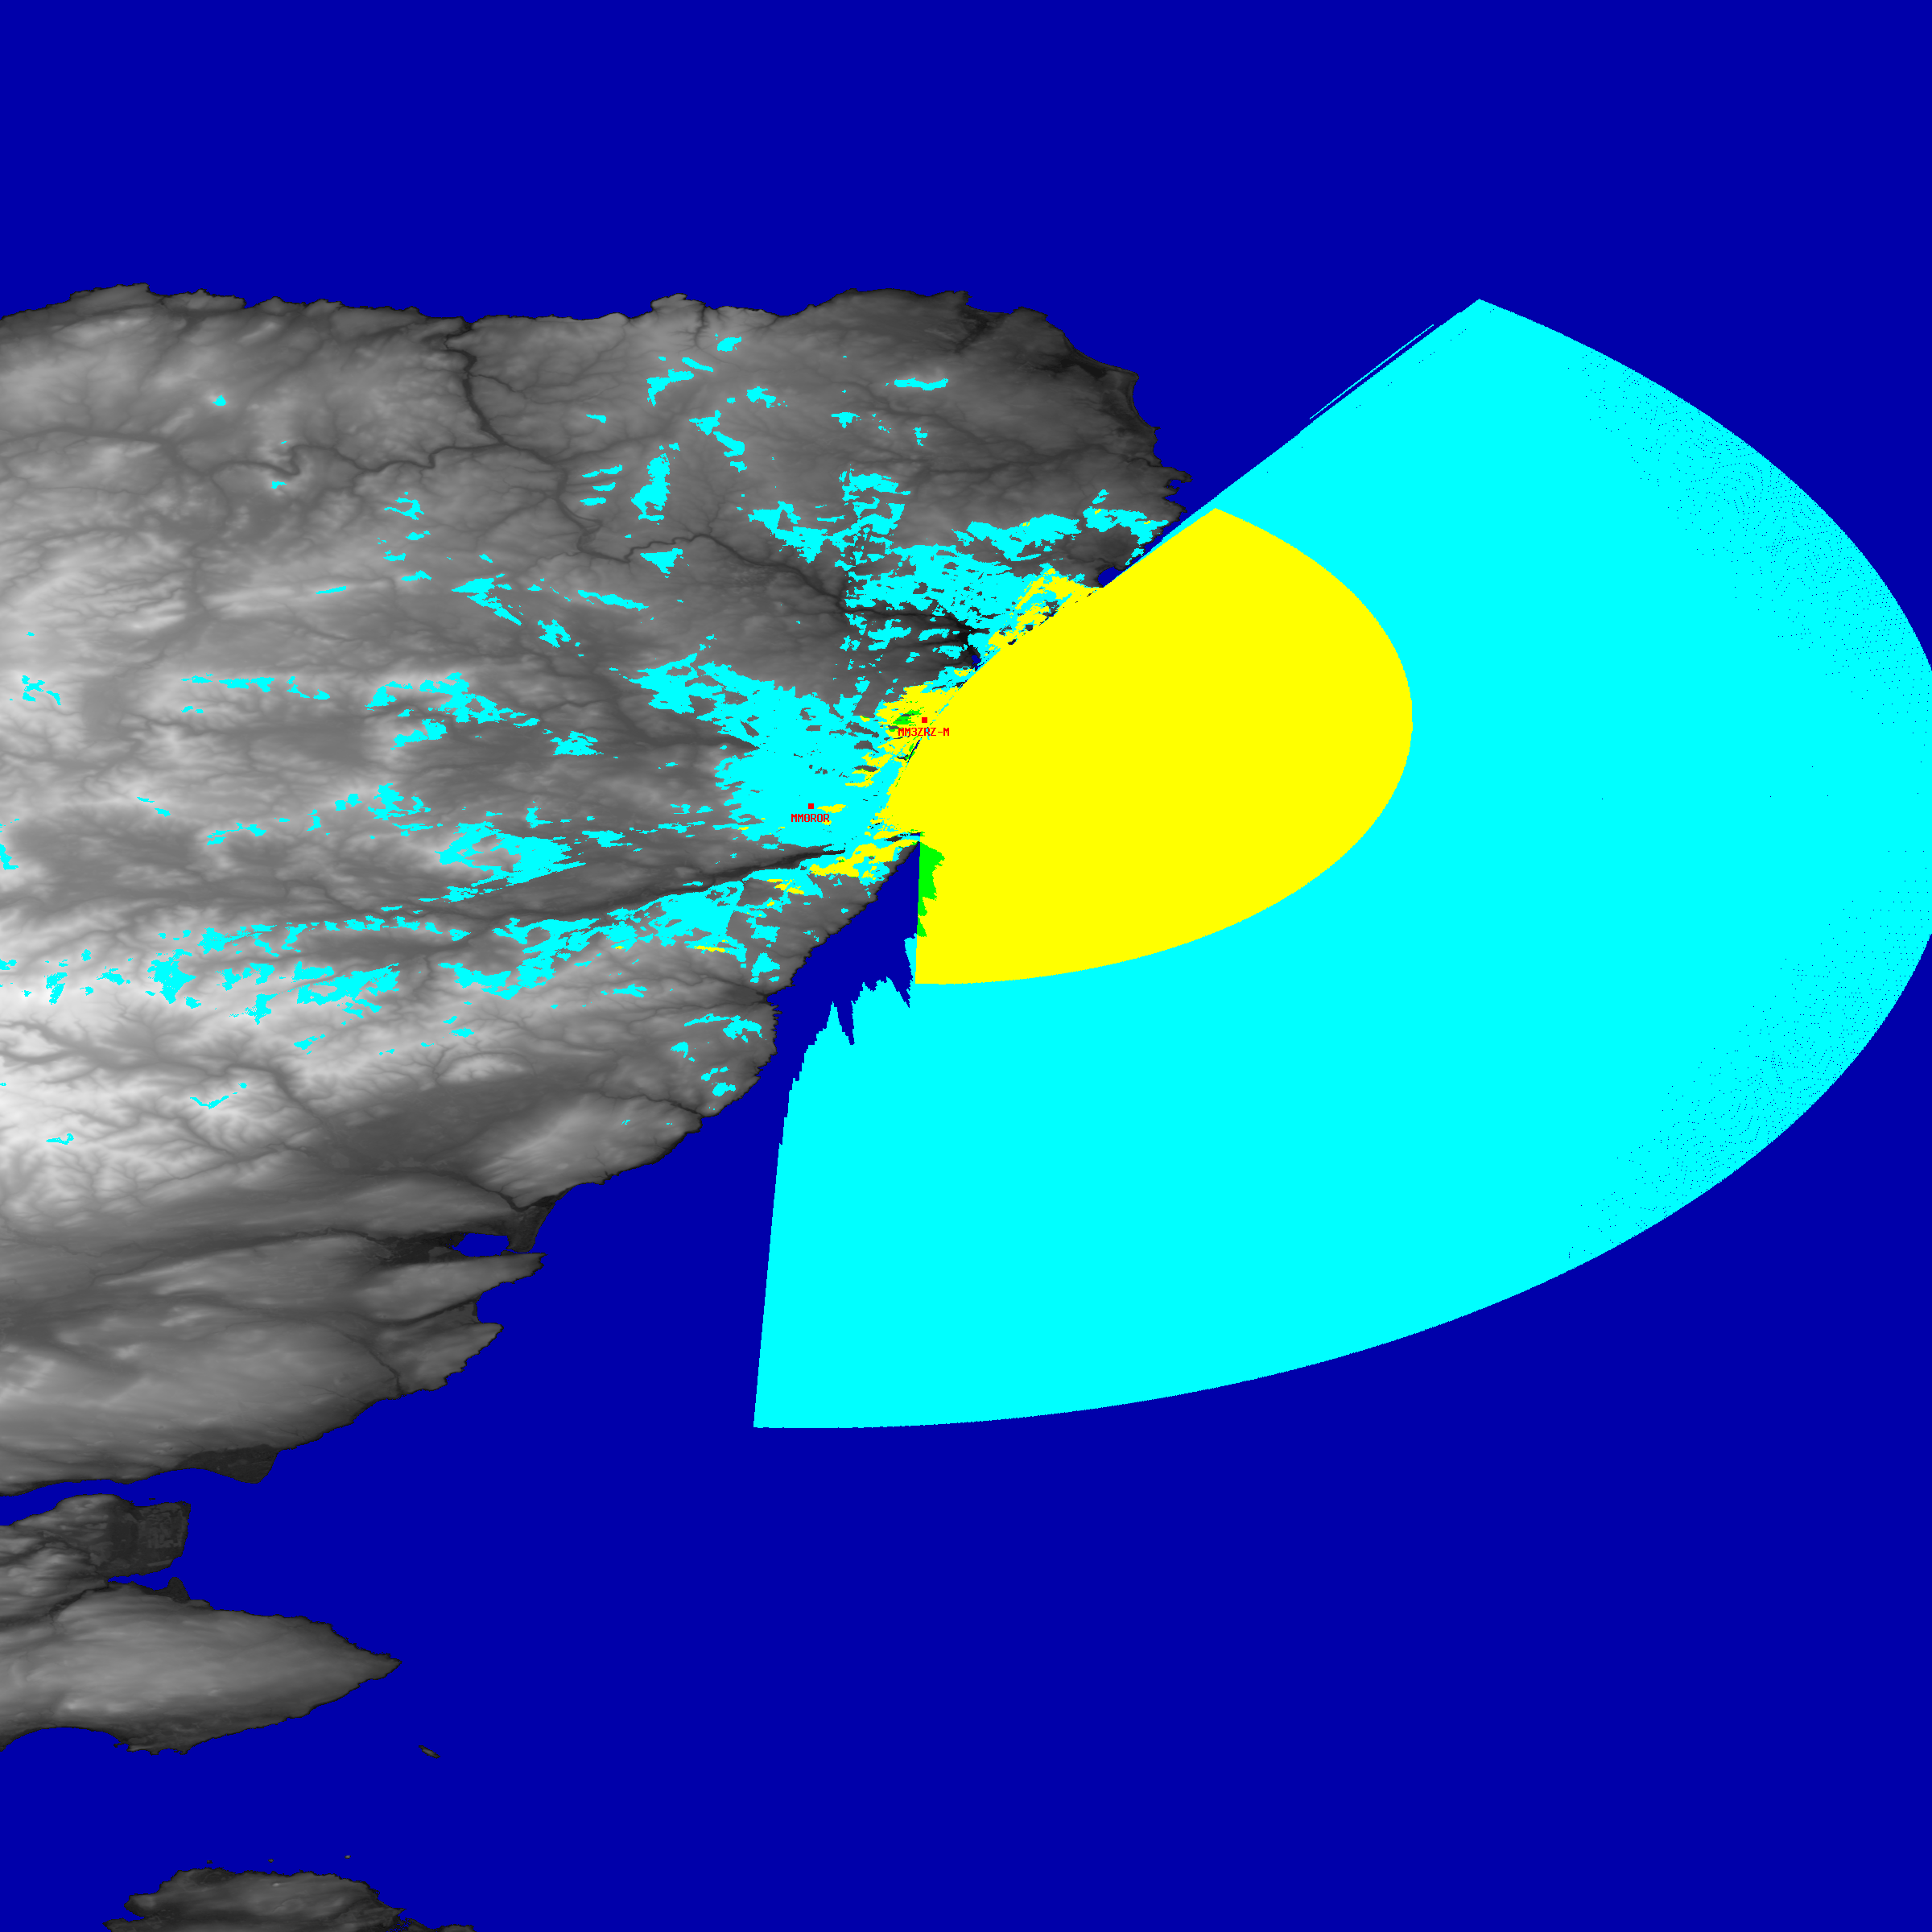 a coverage study, in cyan, green and yellow